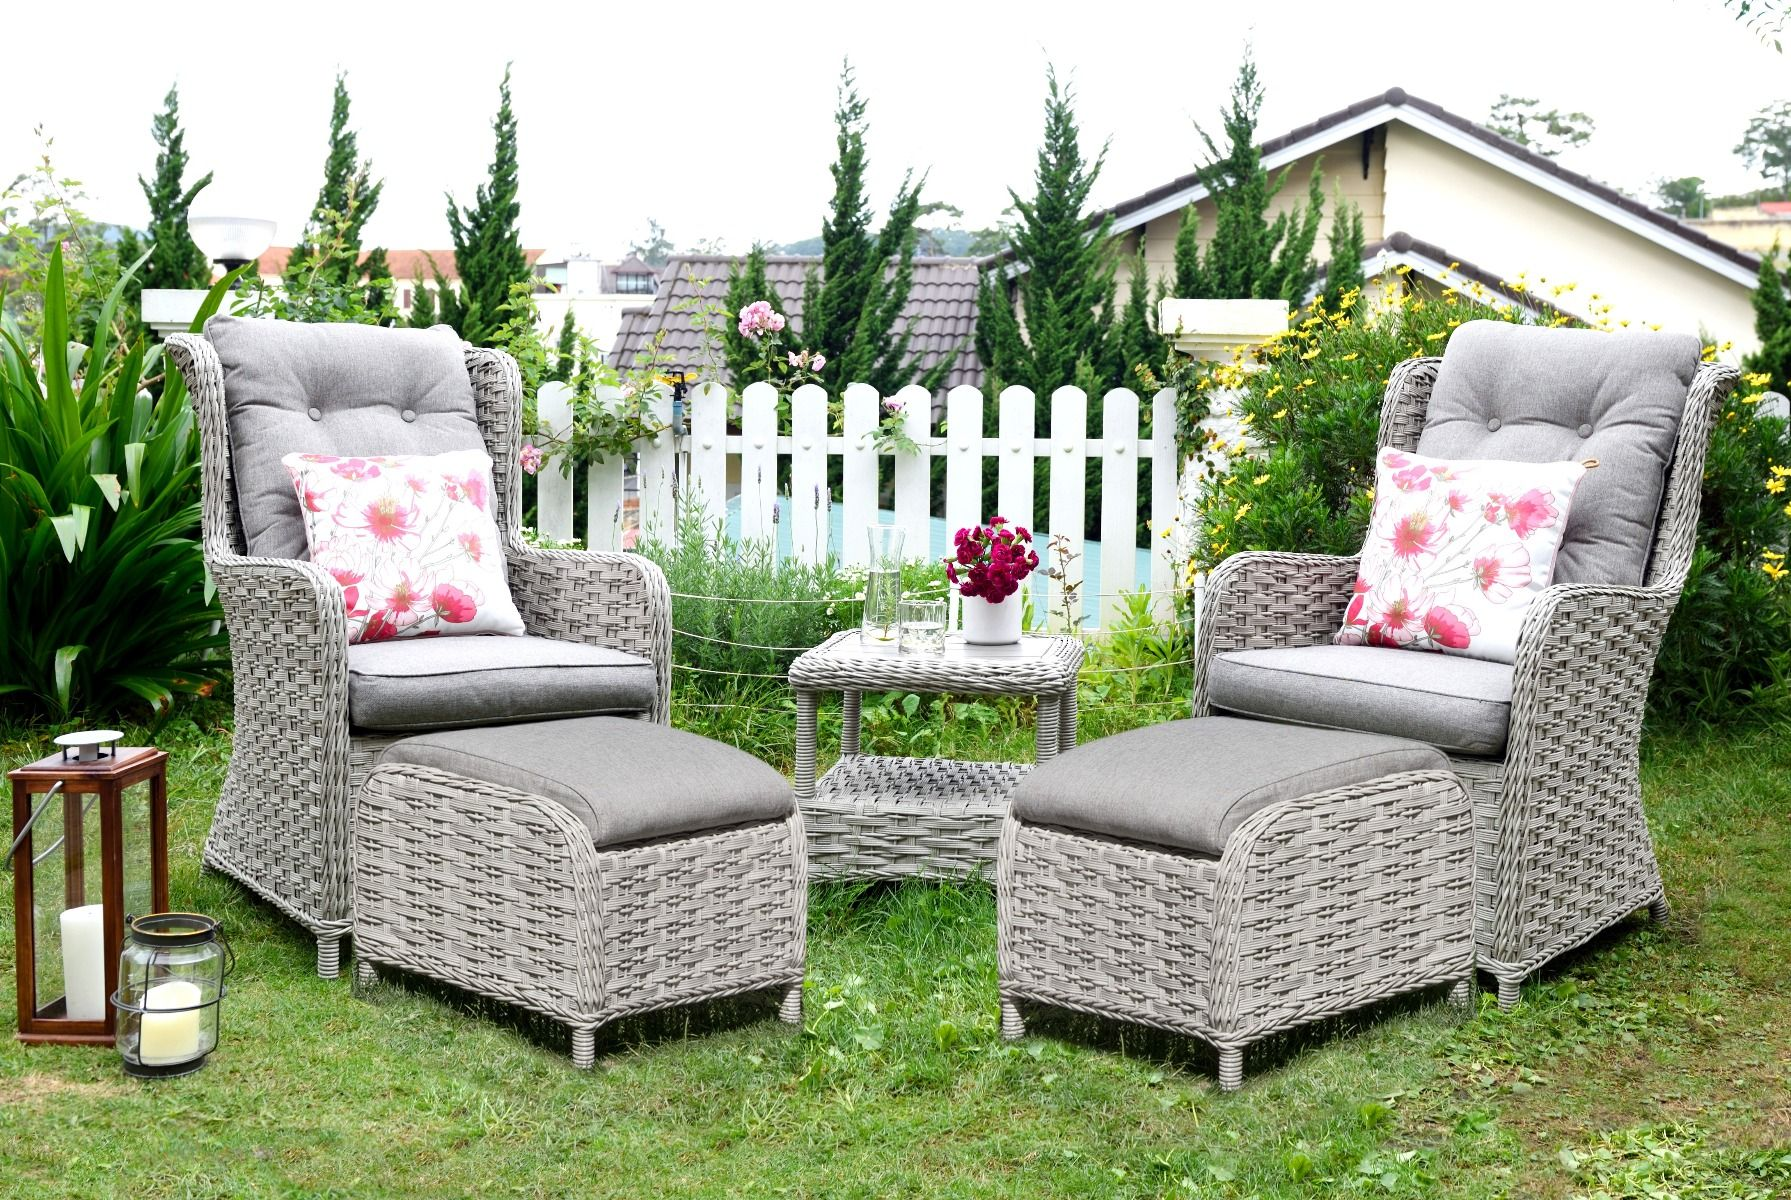 LifestyleGarden Samoa Duo Set with Footstools | Local Delivery Only